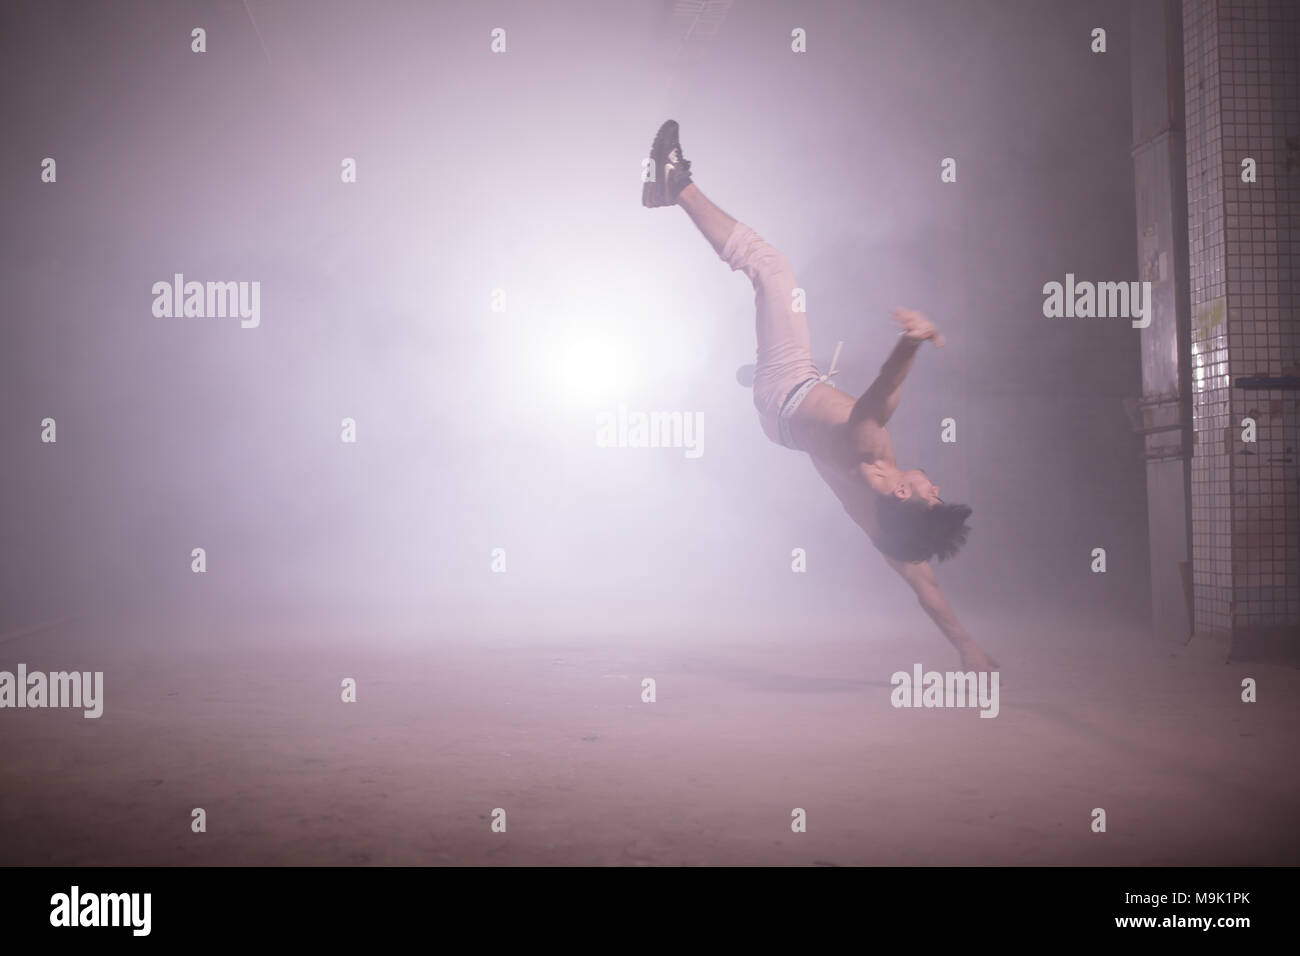 young stuntman performing the trick in the air. making complex movements. air spinning. airflare, airtwist - Stock Image